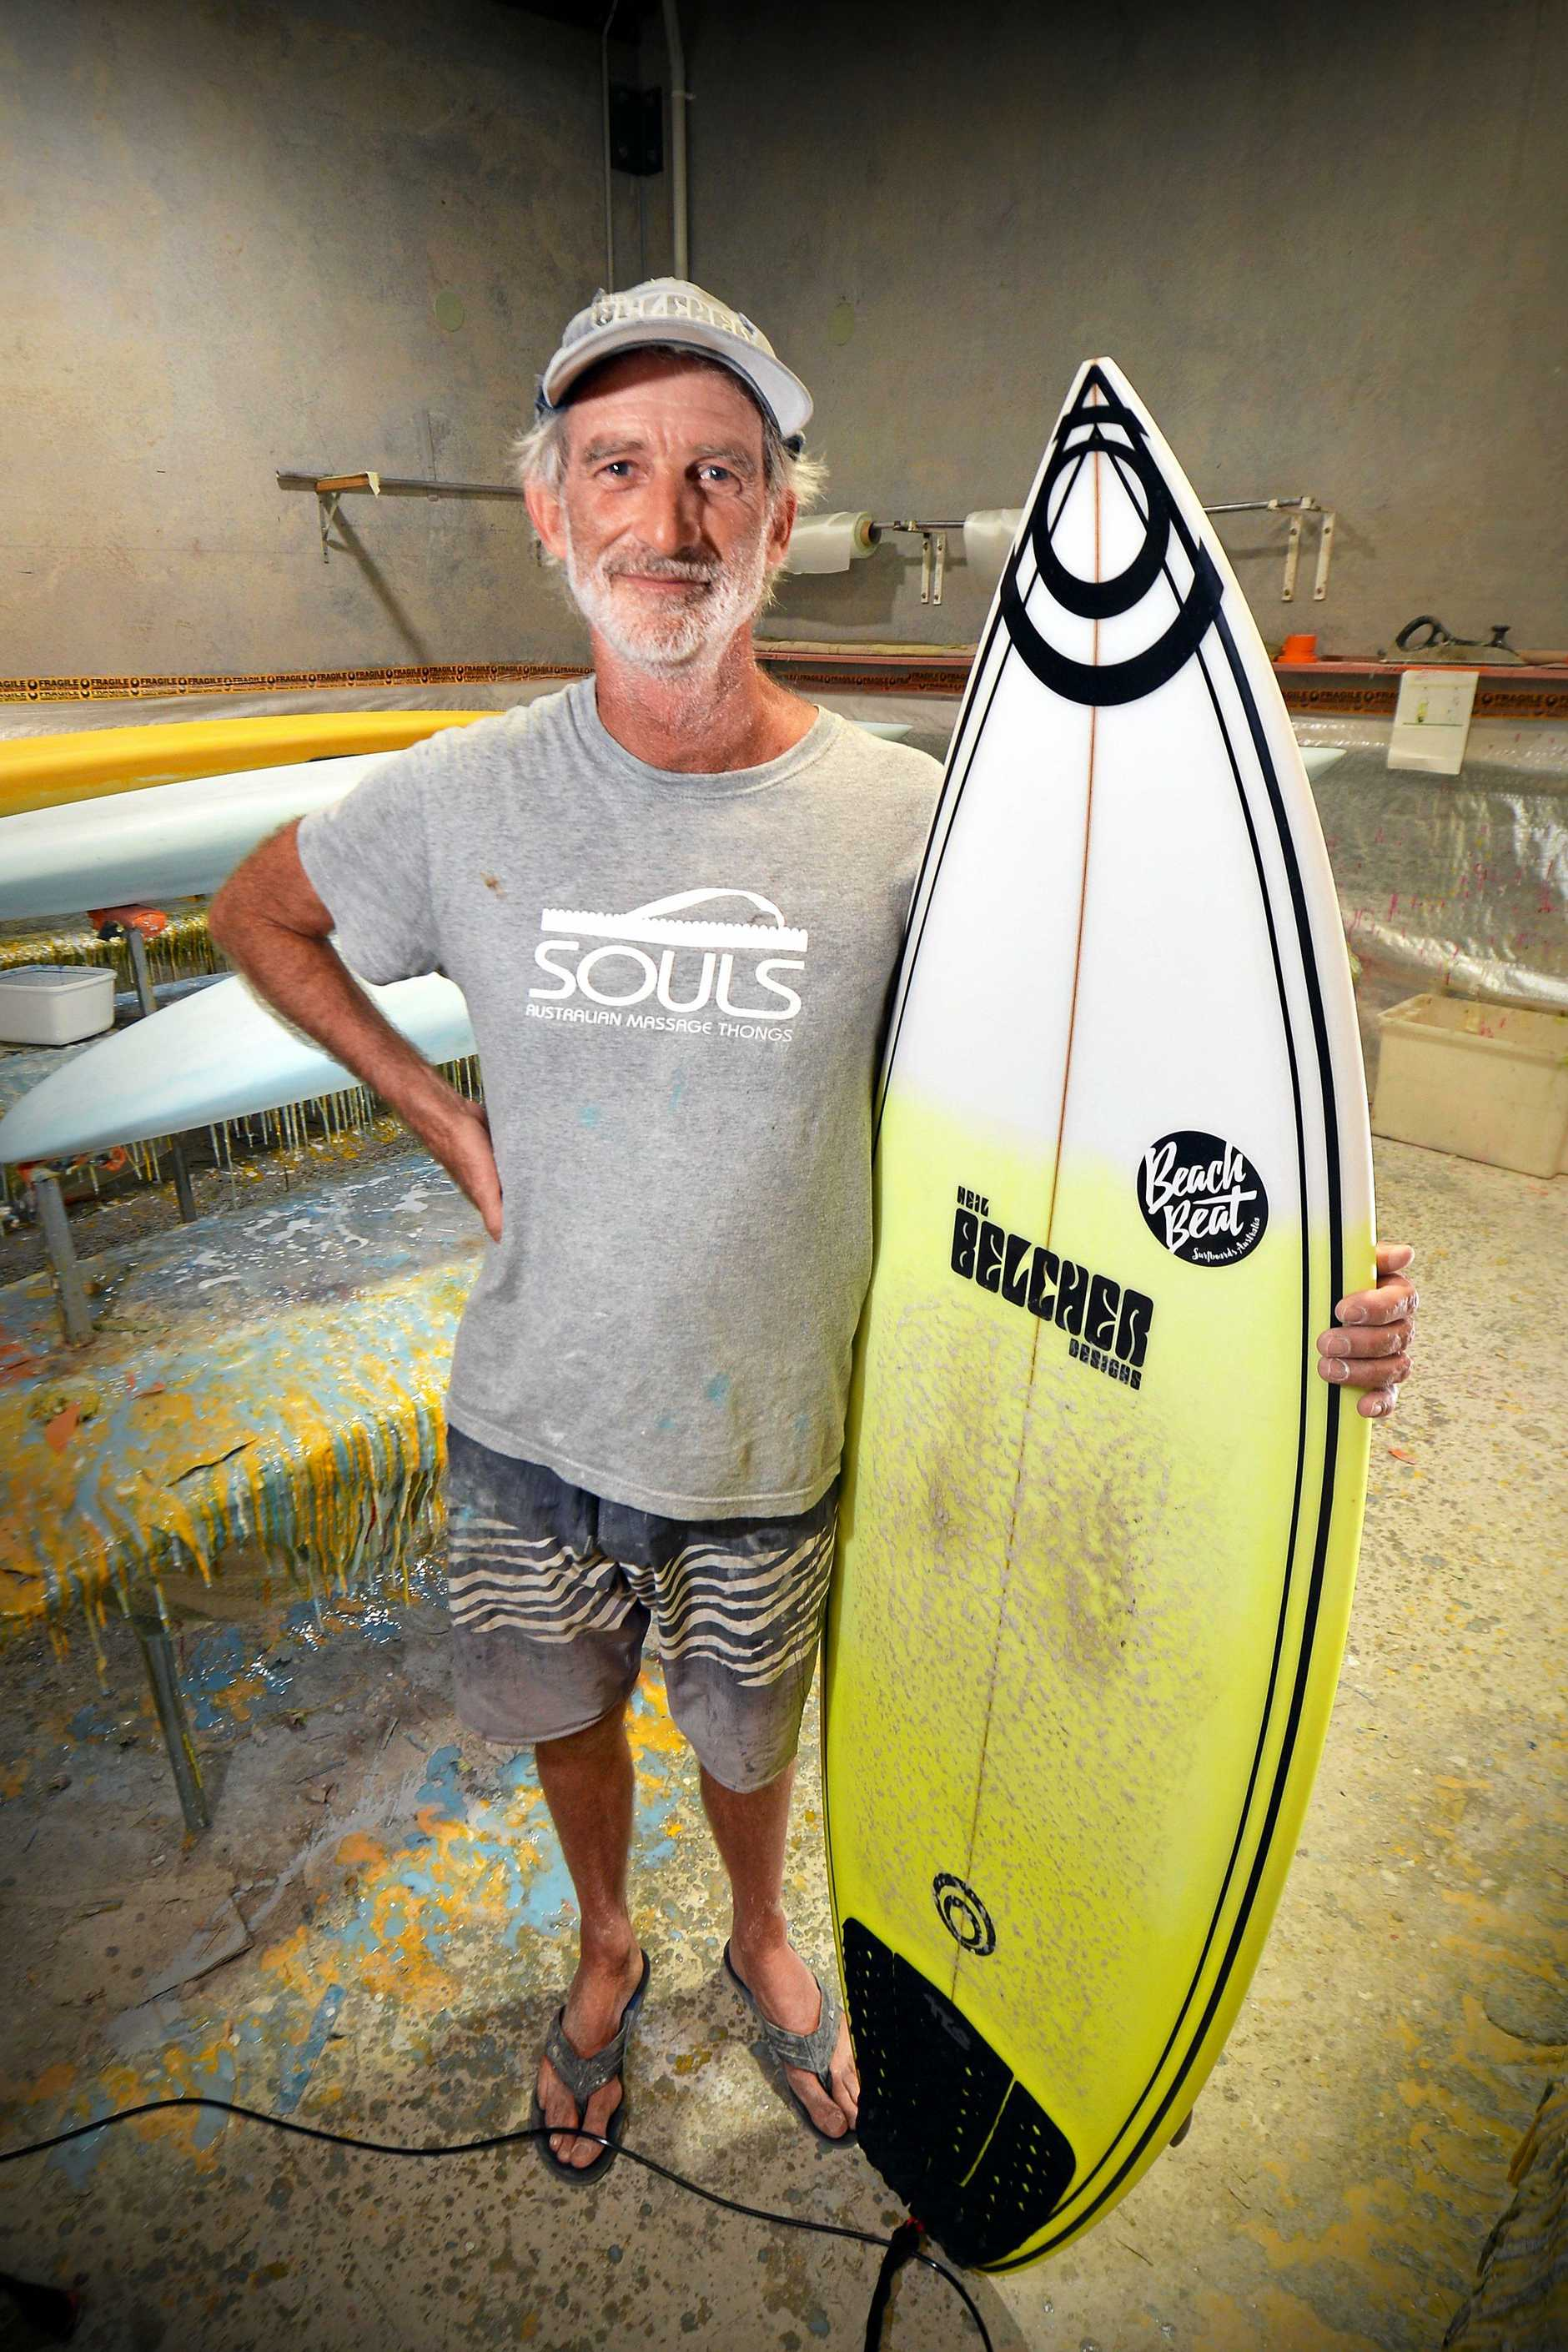 Neil Belcher has known them for more than 30 years, working in tandem and as friendly rivals.